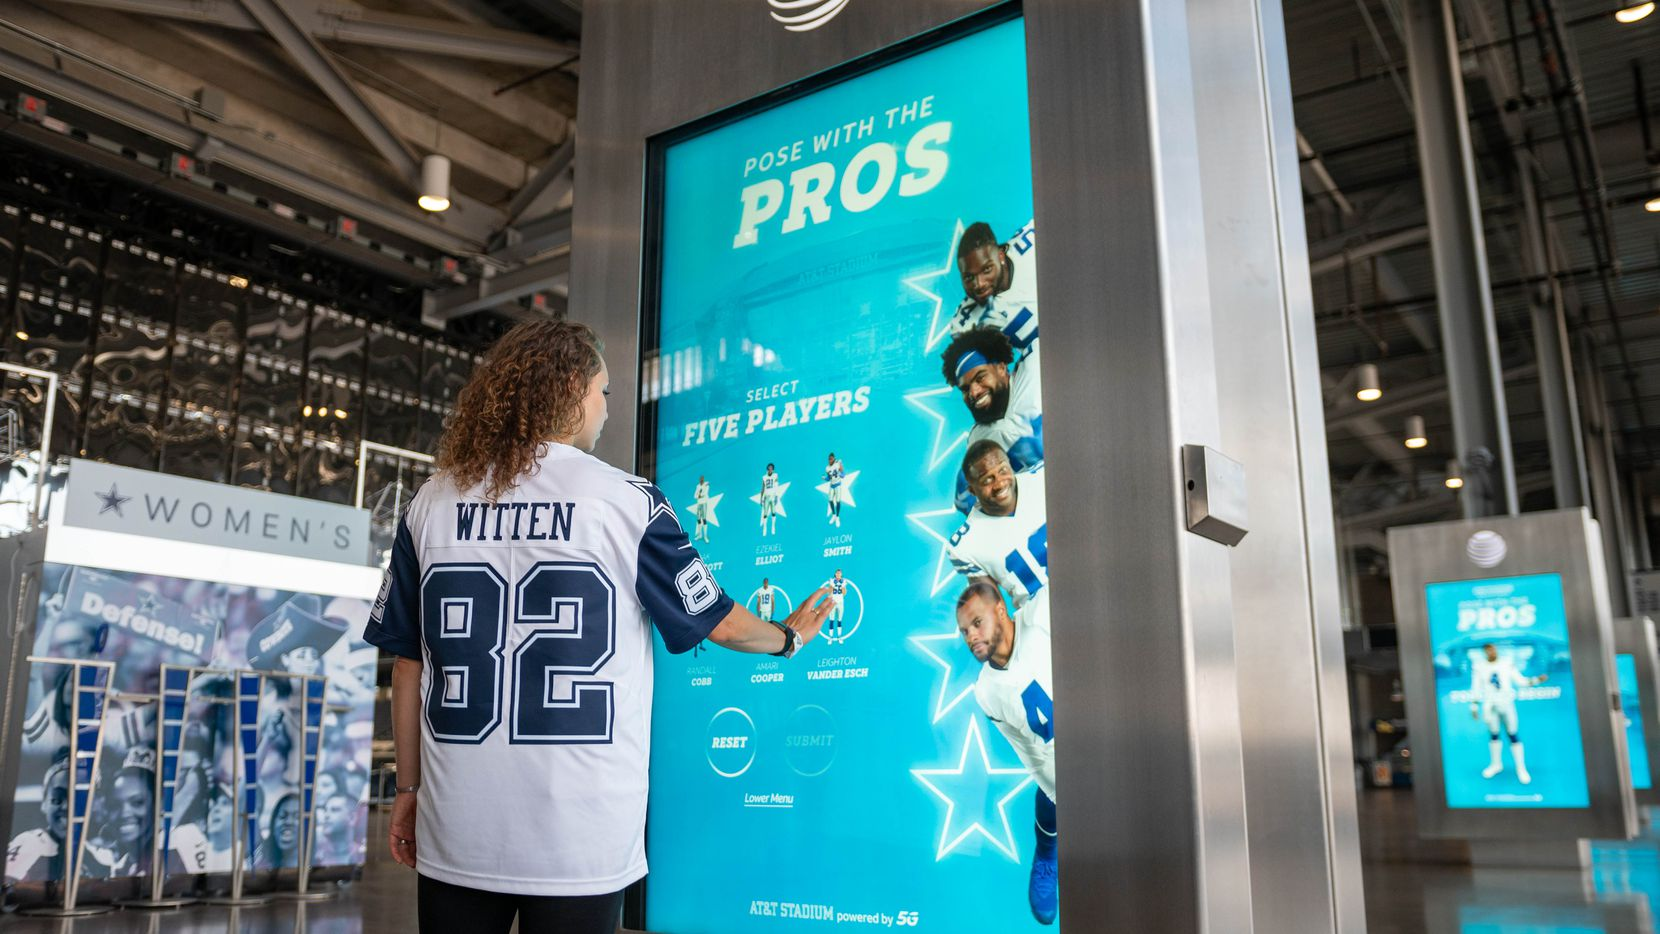 AT&T's Pose With The Pros experience at AT&T Stadium.